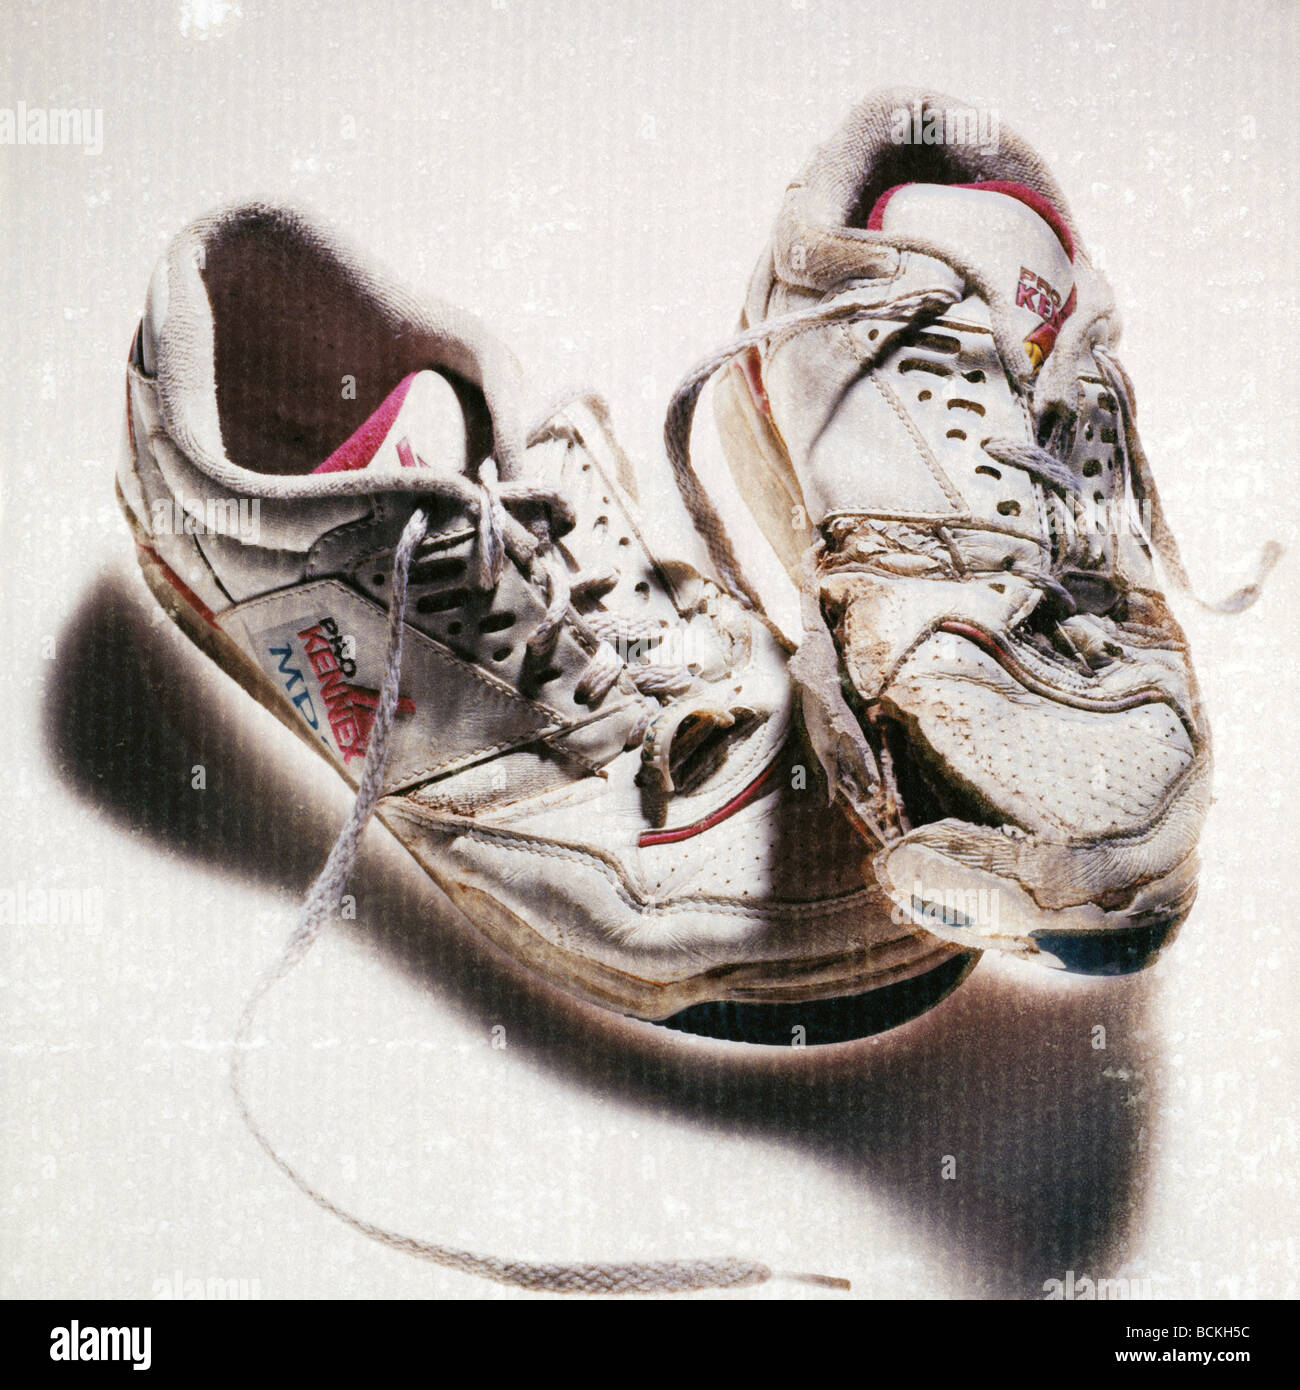 Alamy Photosamp; Shoes Old Stock Images Tennis sdxQrBhtC